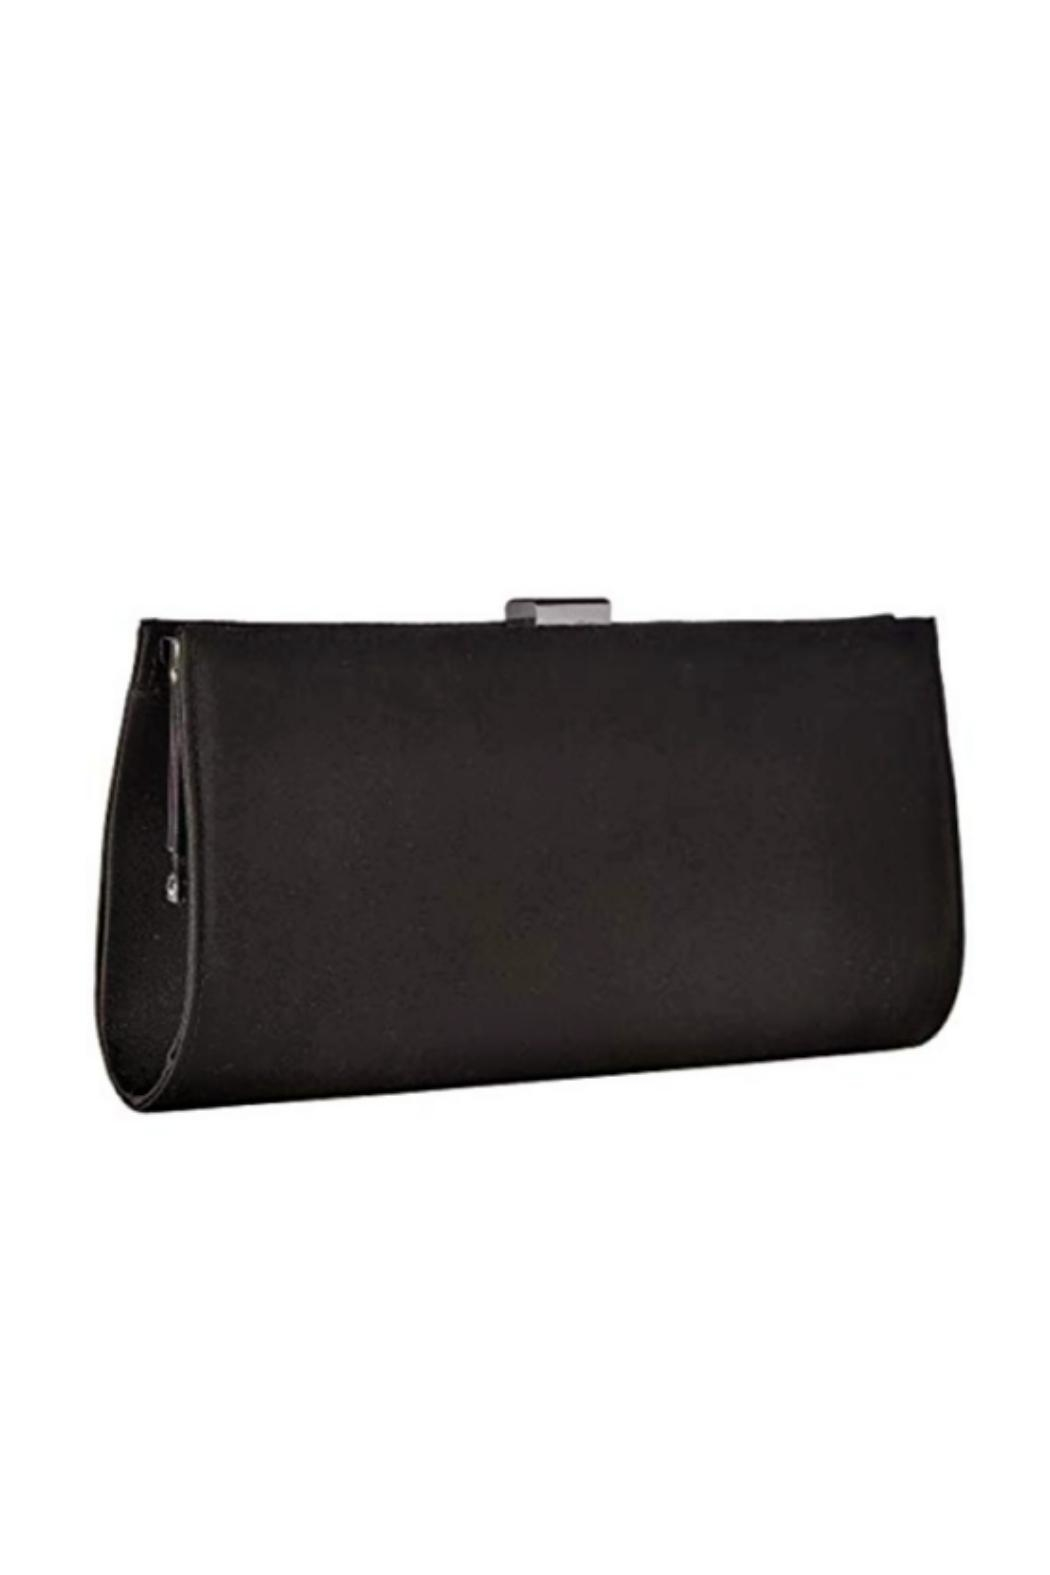 Adrianna Papell Black Stacee Clutch - Side Cropped Image